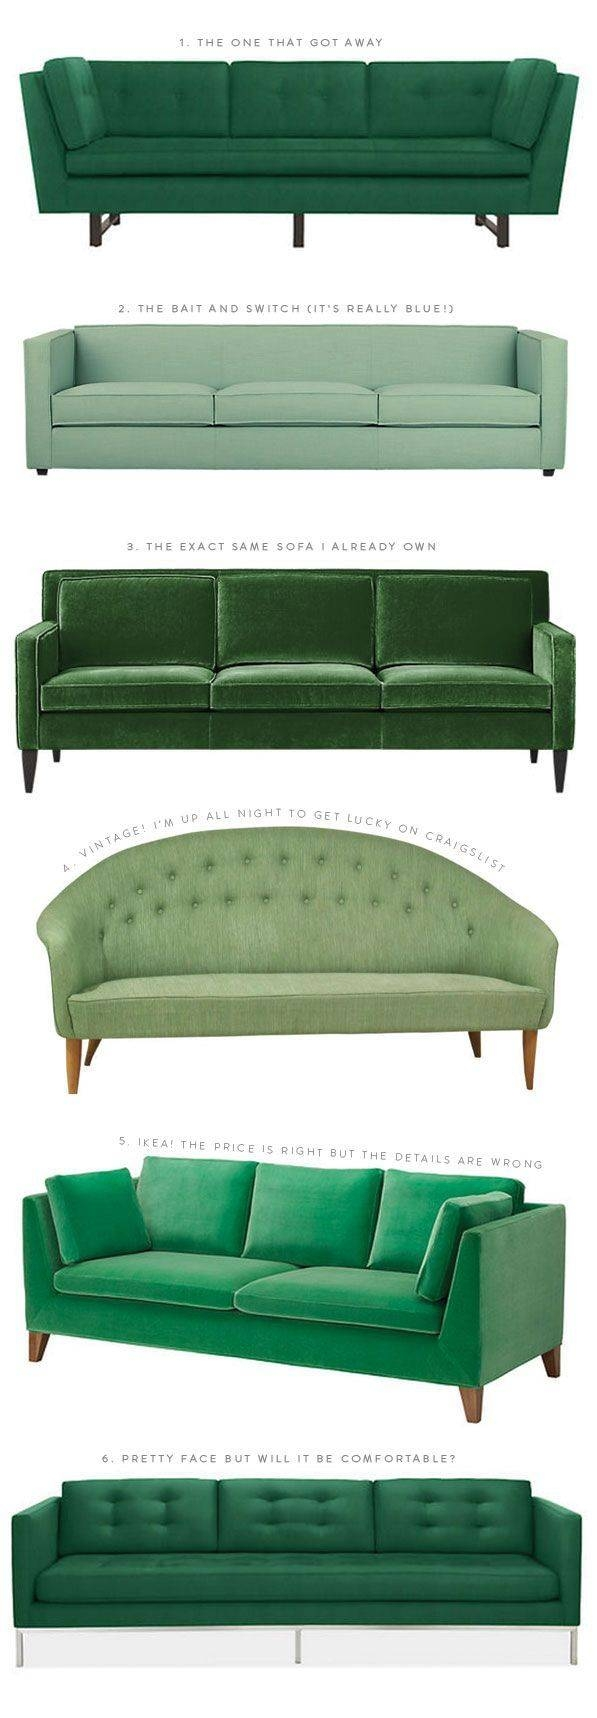 307 Best Sofas & Chairs - Ahhhhh! Images On Pinterest | Sofas in Chintz Sofas (Image 3 of 22)